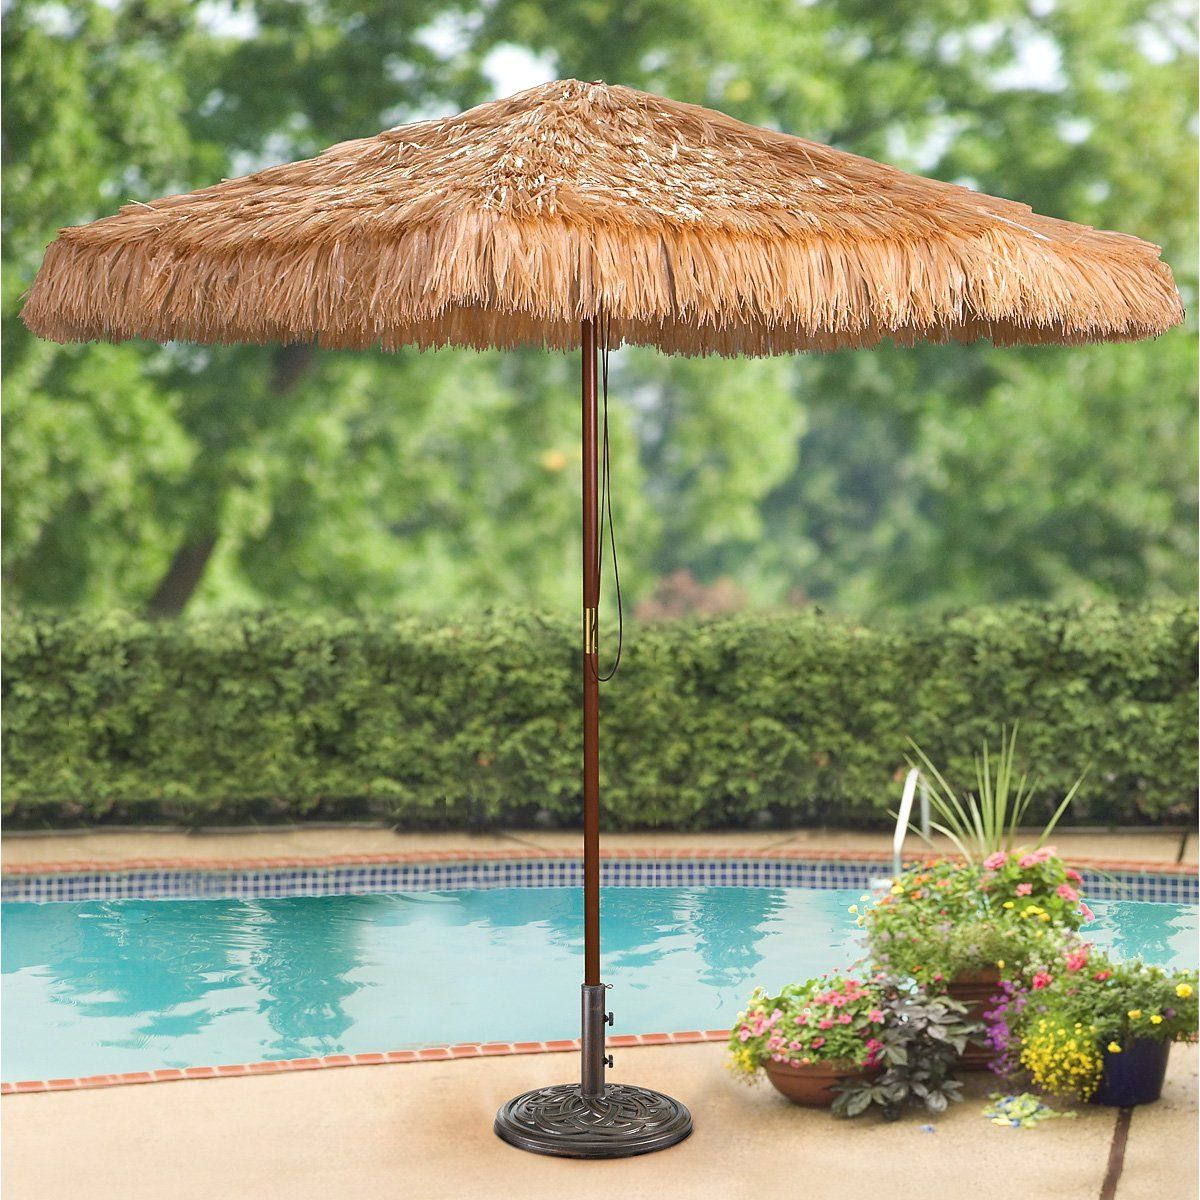 Best And Newest Amazon : Castlecreek 9 Foot Thatched Tiki Umbrella : Patio Inside Tropical Patio Umbrellas (View 13 of 20)